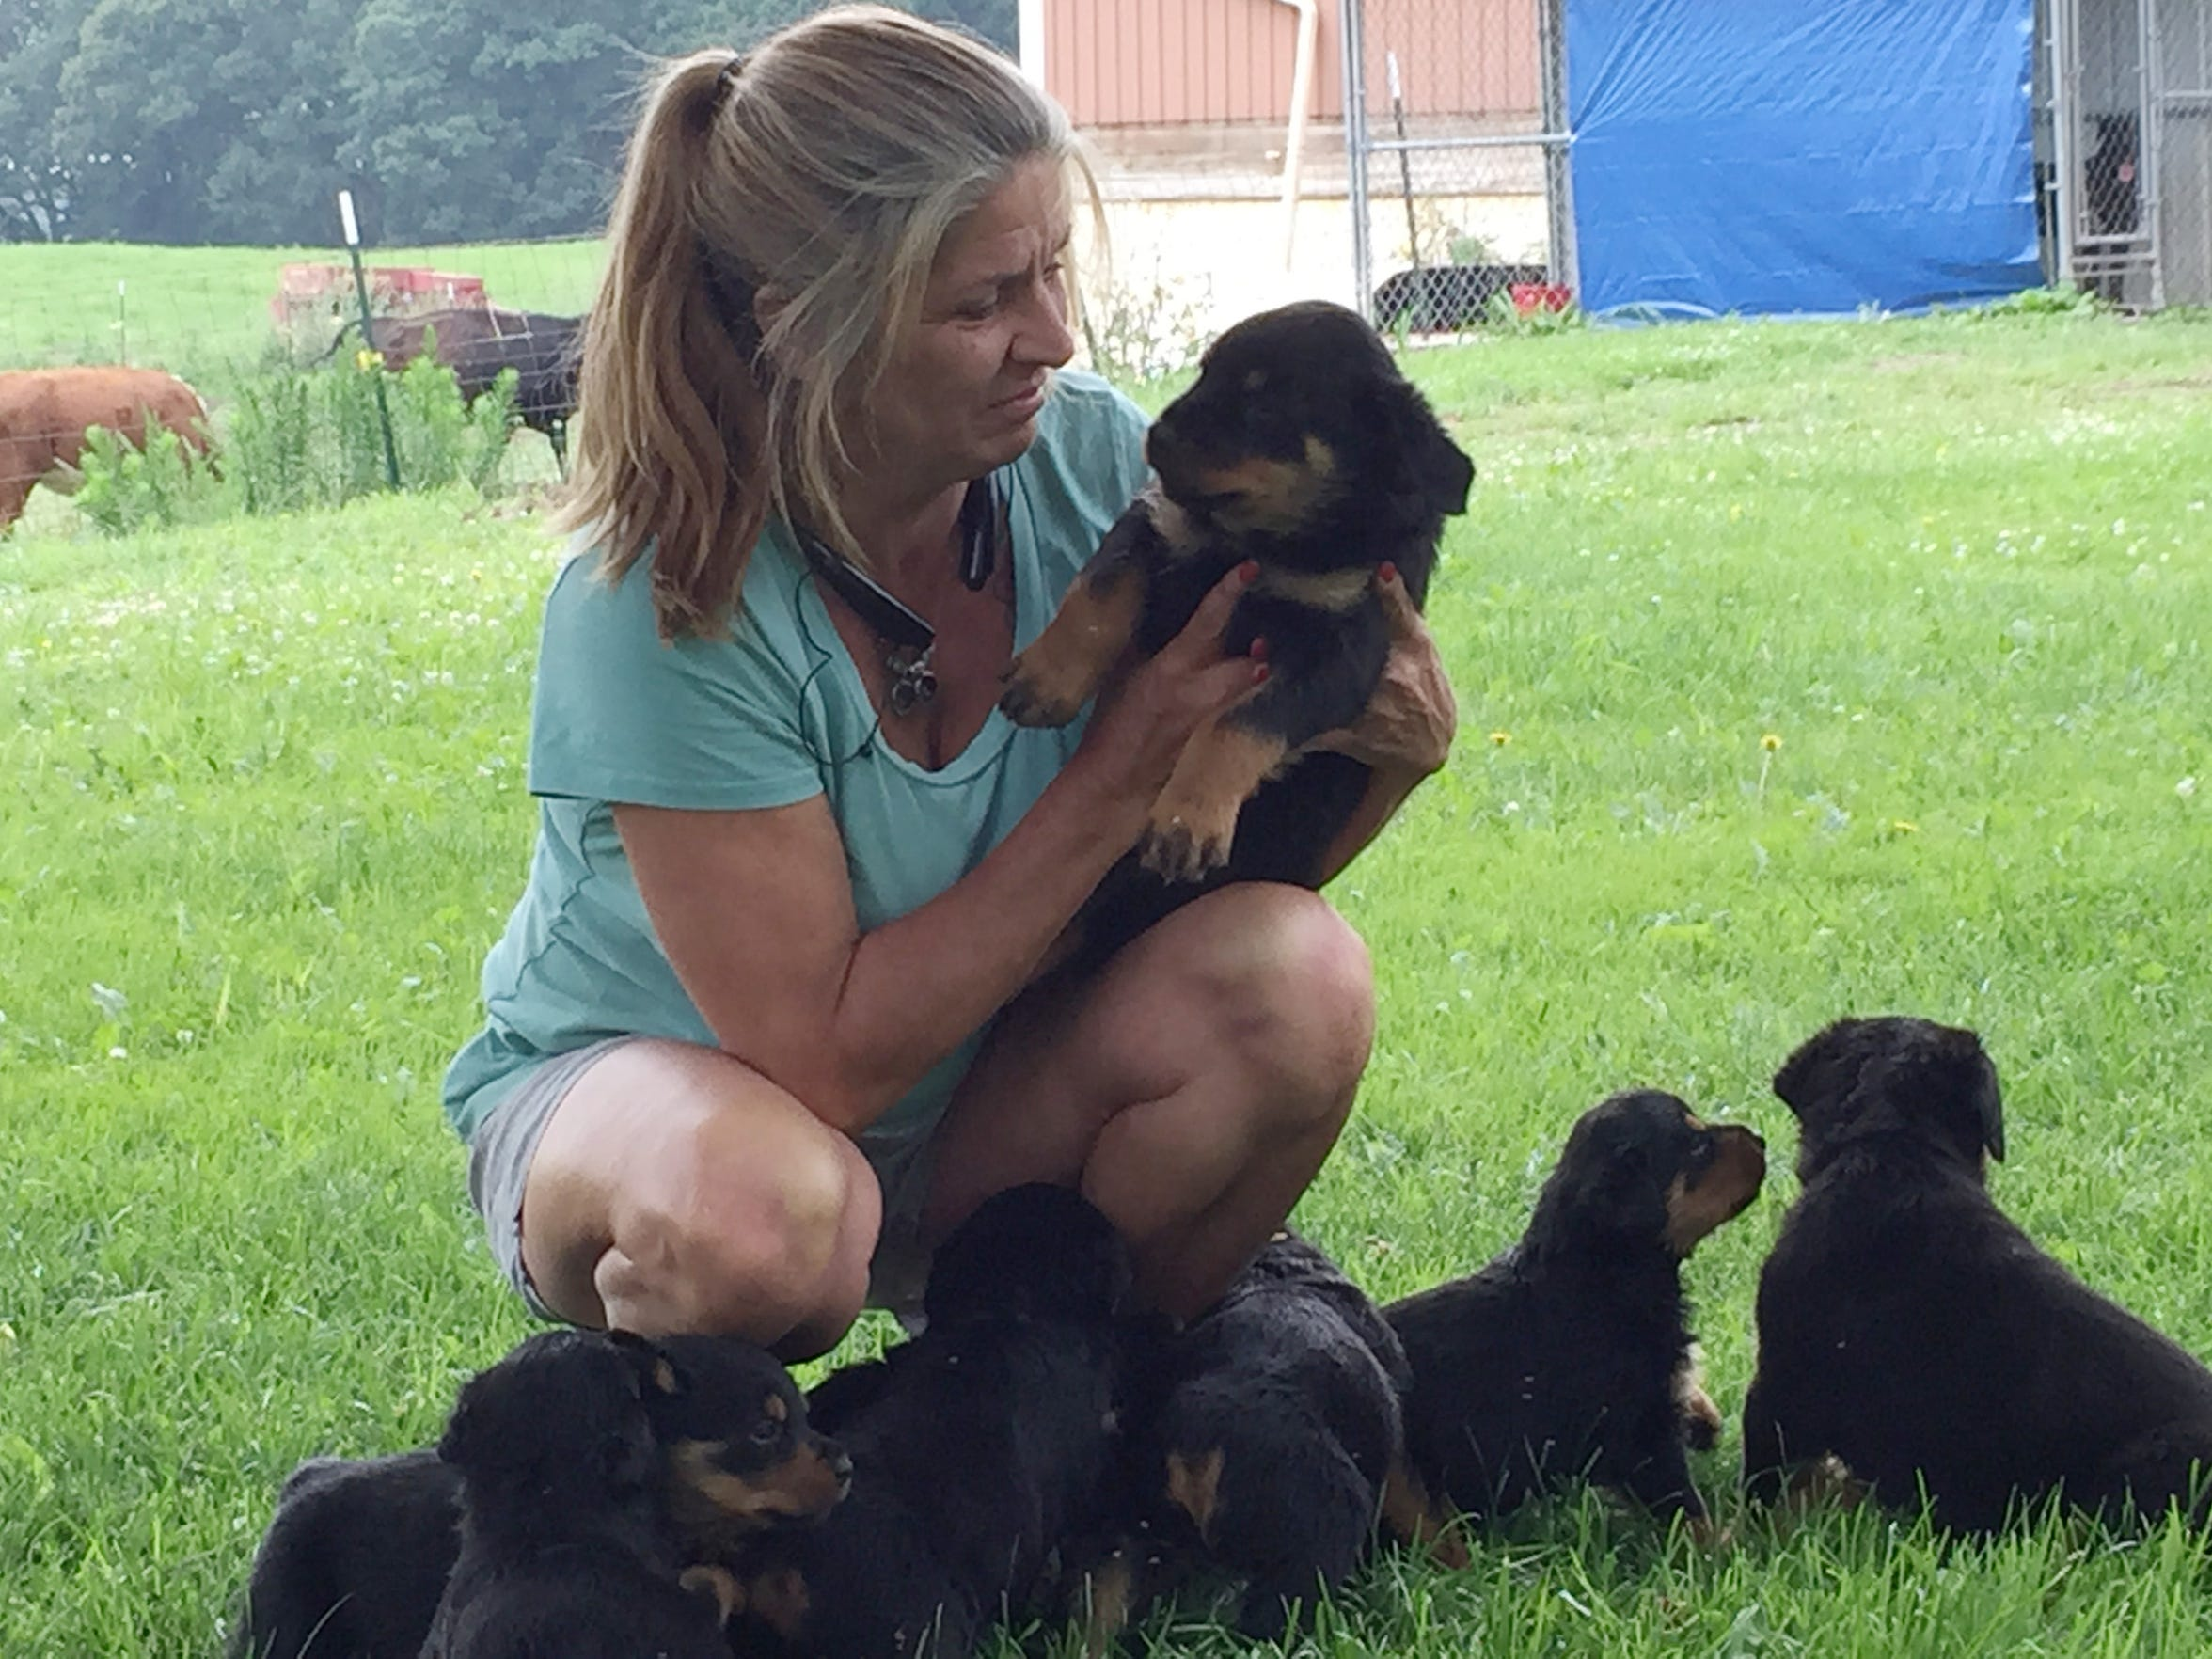 Karen McMaster of Hartland Township with her Rottweiler puppies that she breeds. Her husband, Robert McMaster, was injured when a truckload of steel guard rails that he was unstrapping fell on him. He died several days later.